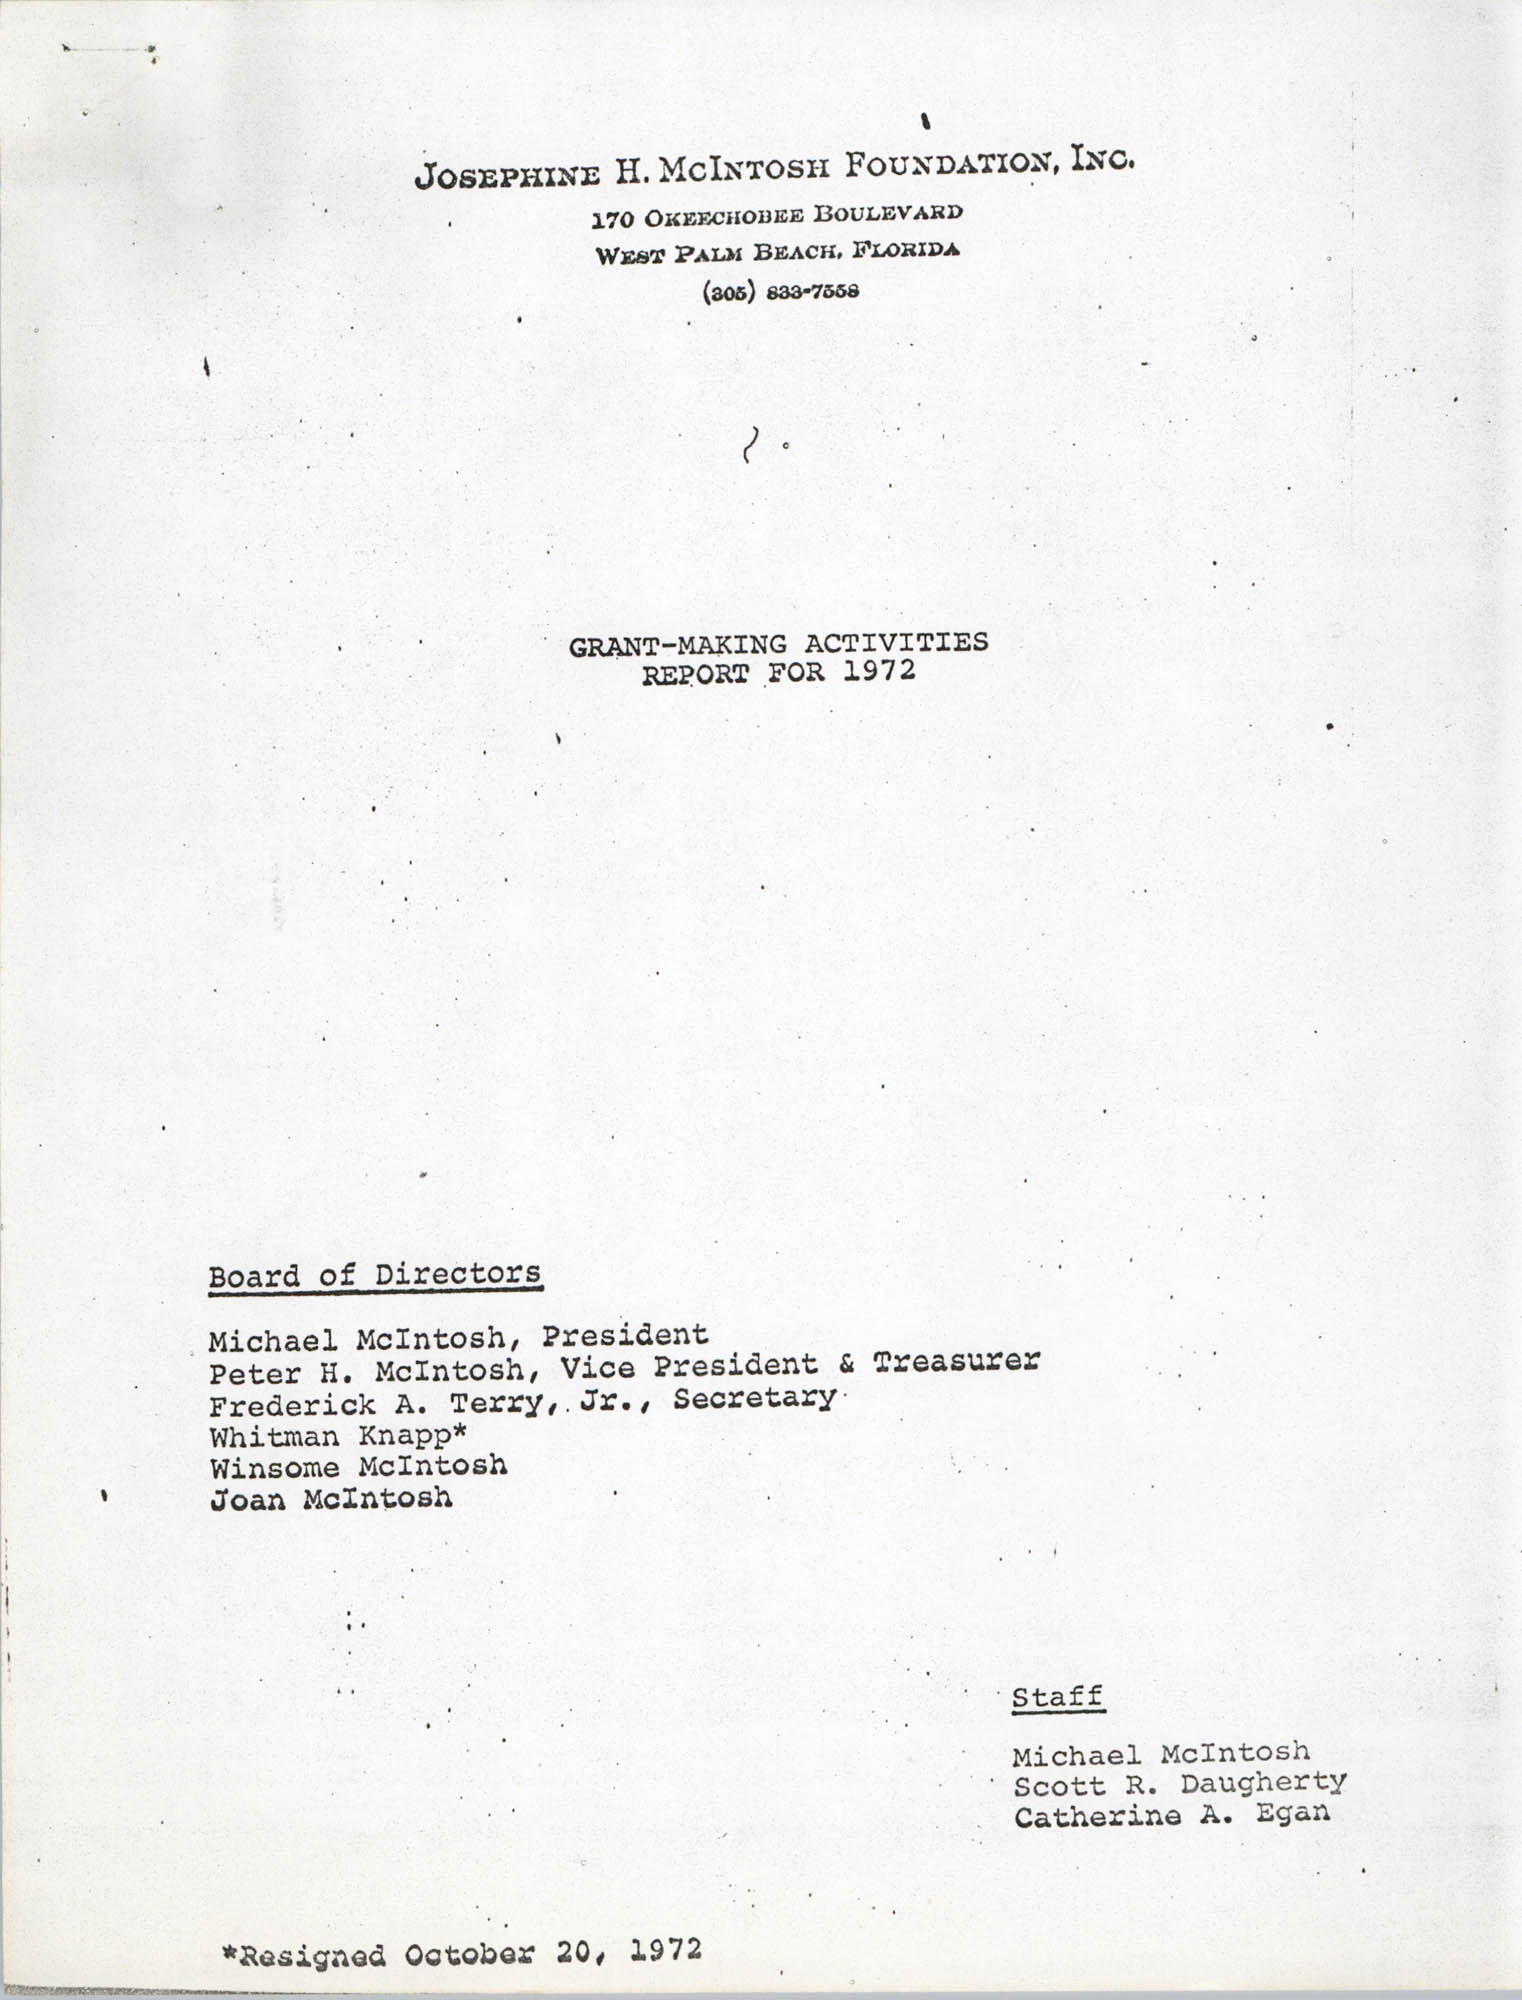 Josephine H. McIntosh Foundation Grant-Making Activities Report for 1972, Cover Page